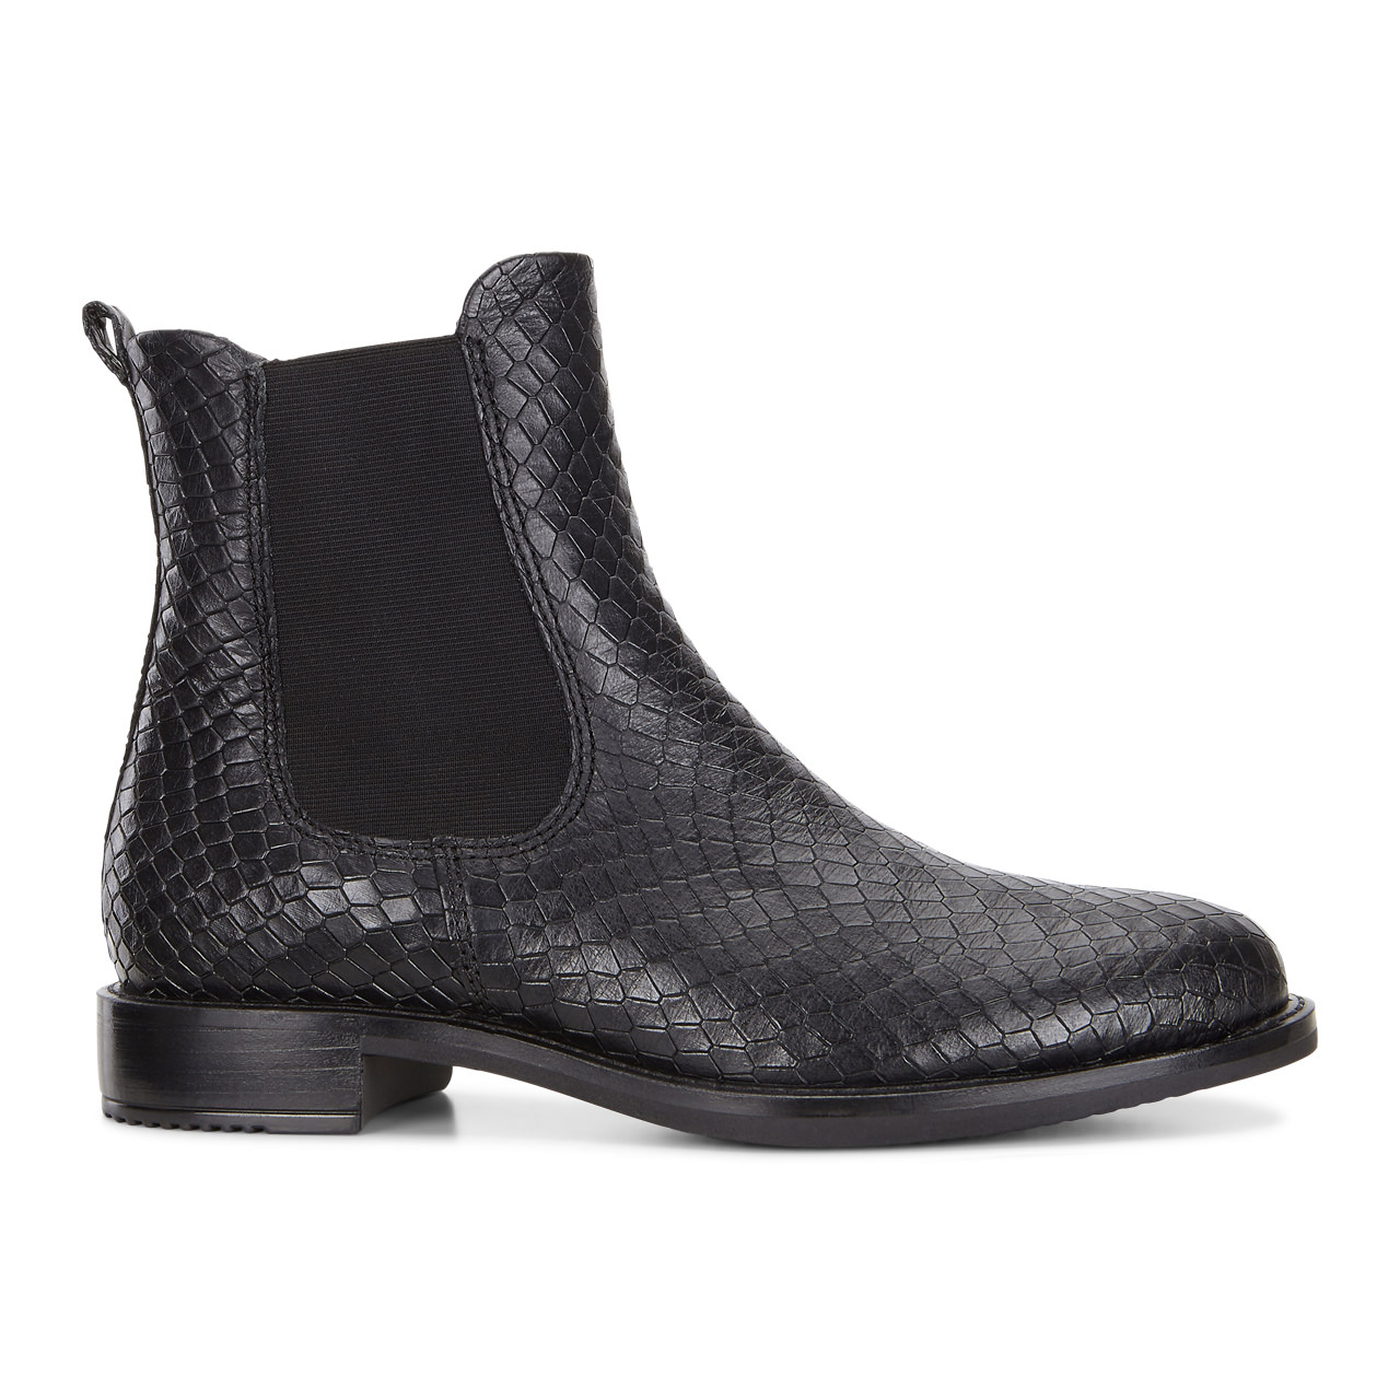 ECCO SARTORELLE Ankle Boot 25mm